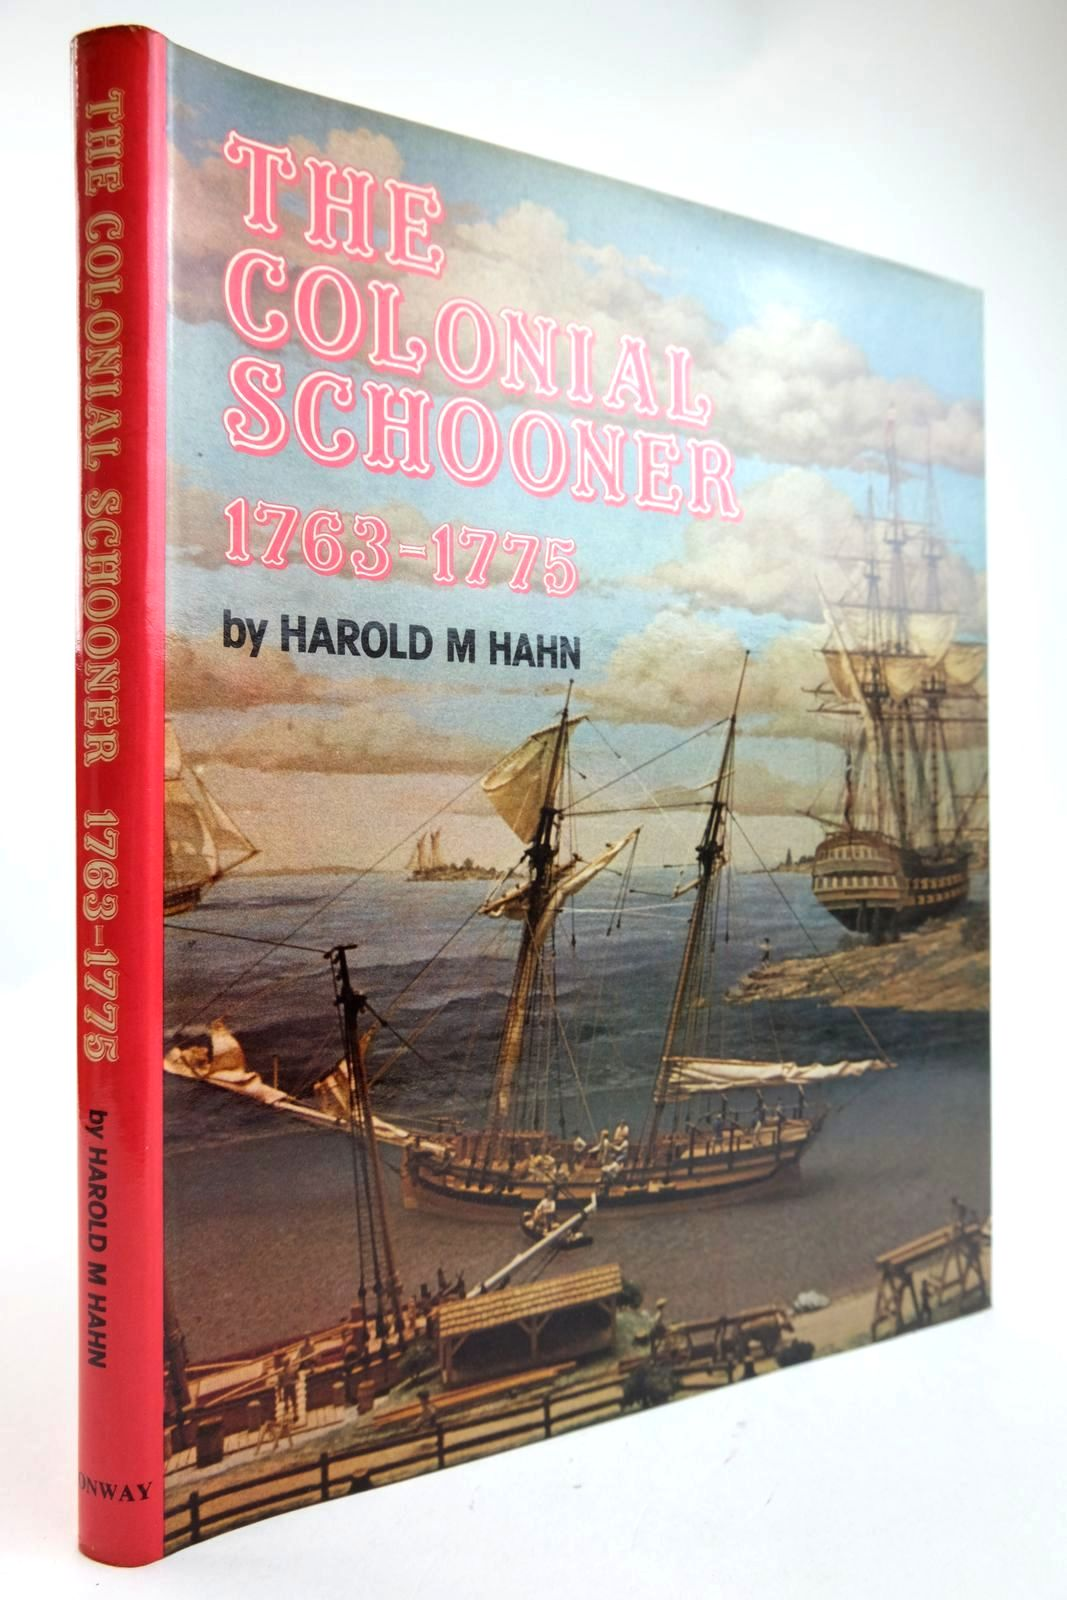 Photo of THE COLONIAL SCHOONER 1763-1775- Stock Number: 2132858